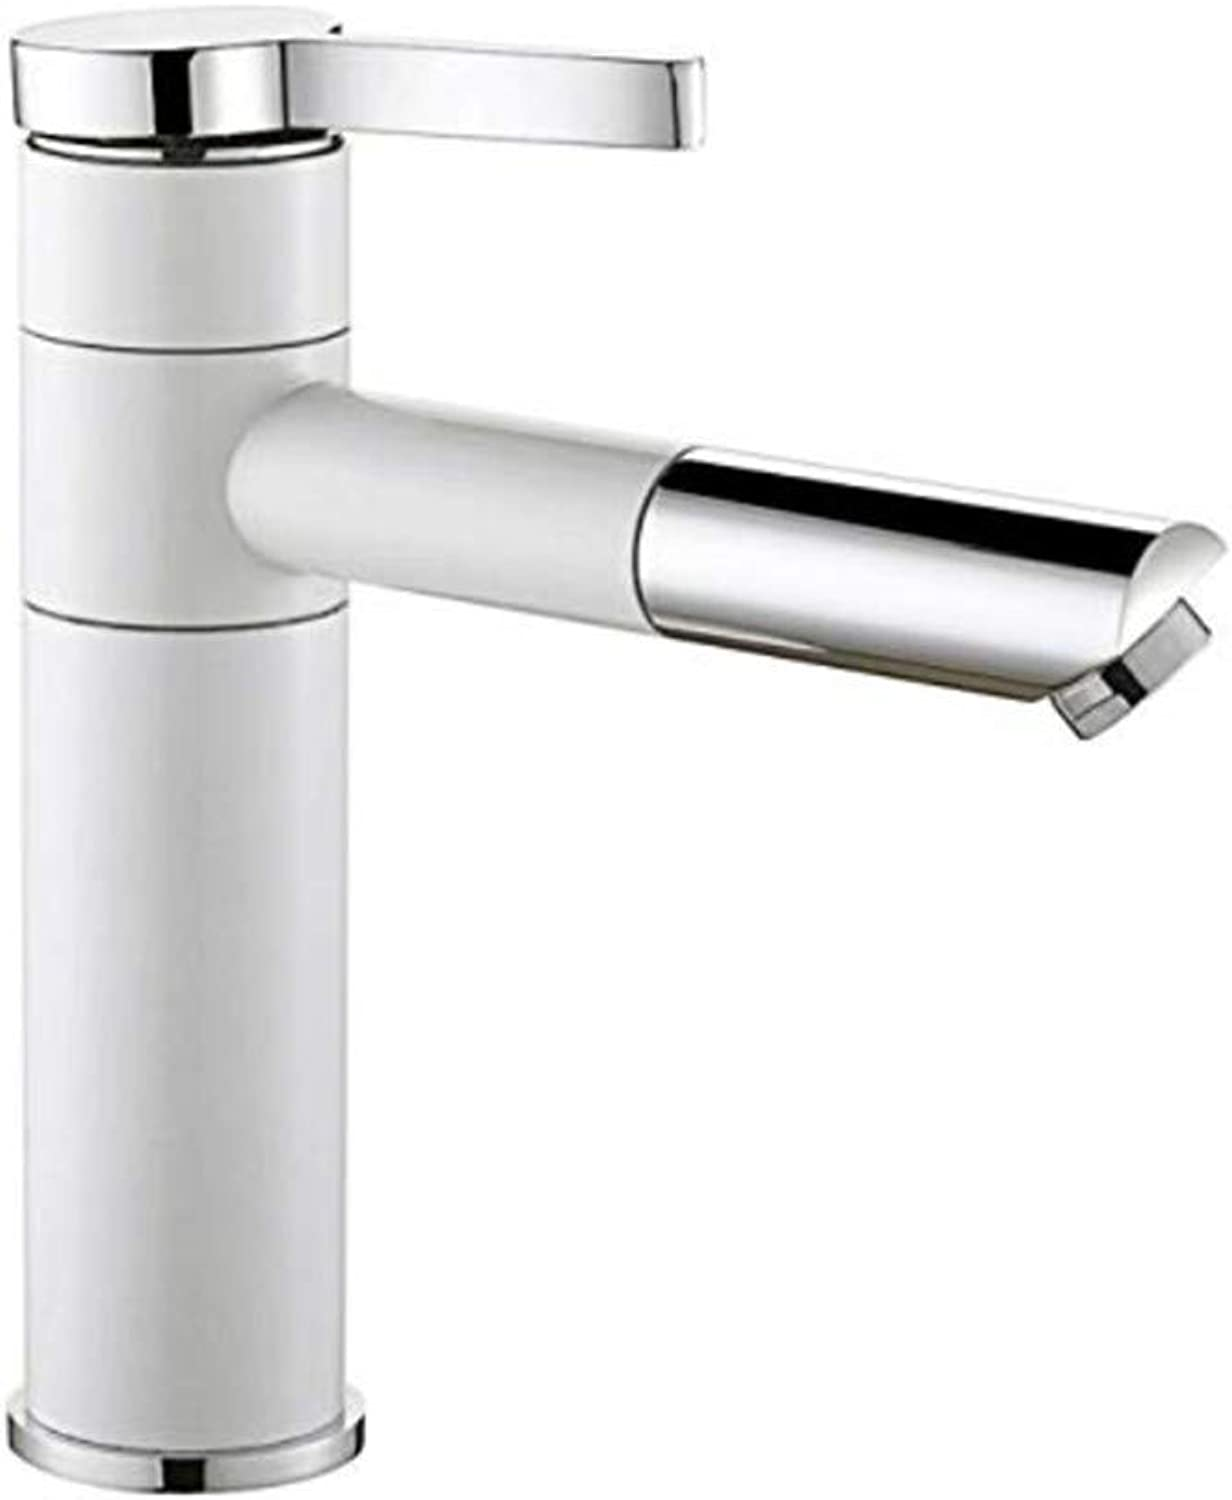 Bathroom Basin Sink Tap 360 Degree redation Bathroom Sink Tap Mixer with 360 Degree Swivel Spout